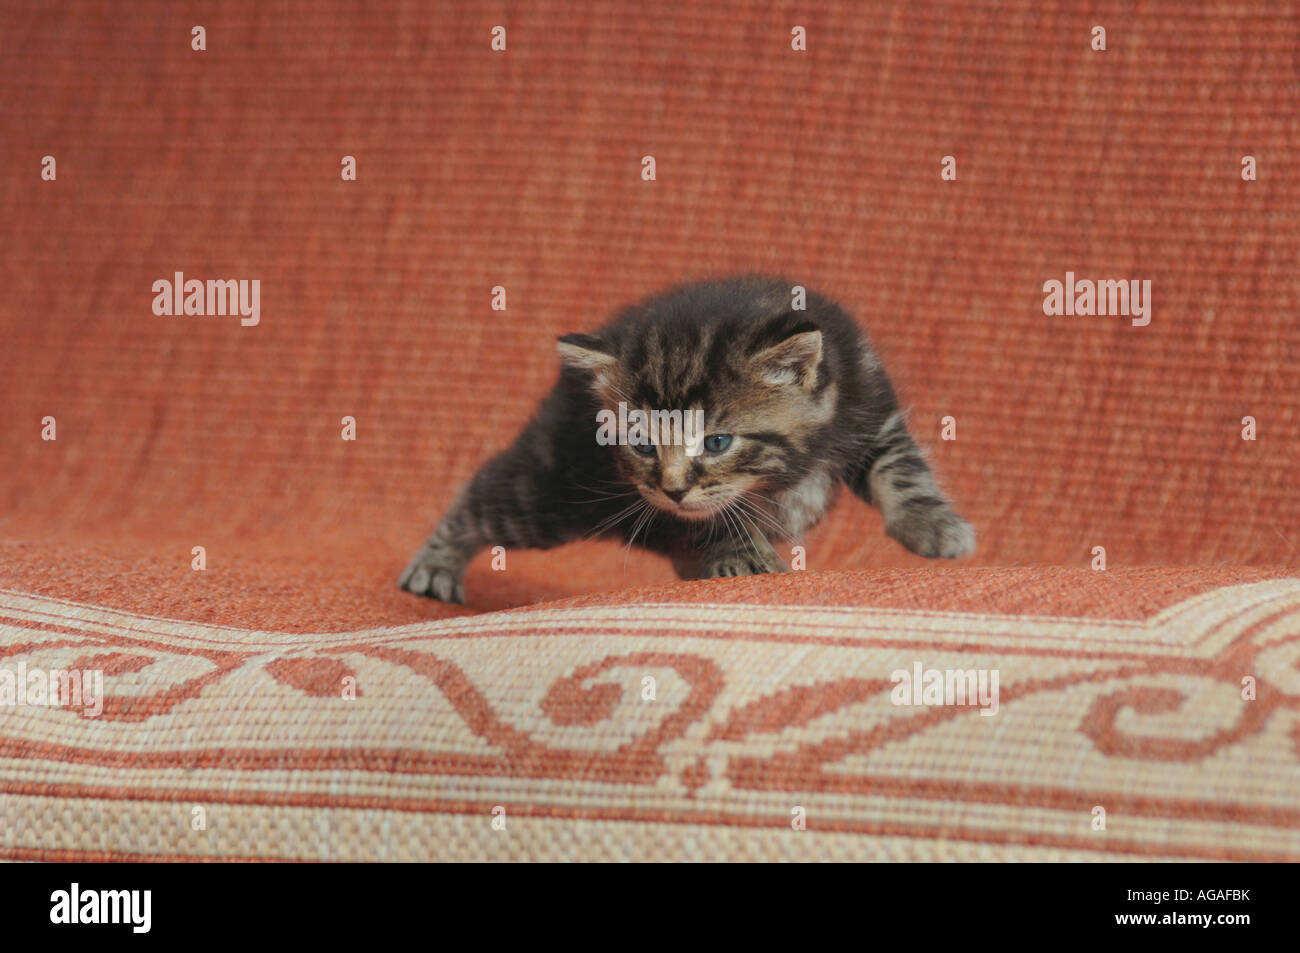 Kitten Standing On A Rug. - Stock Image